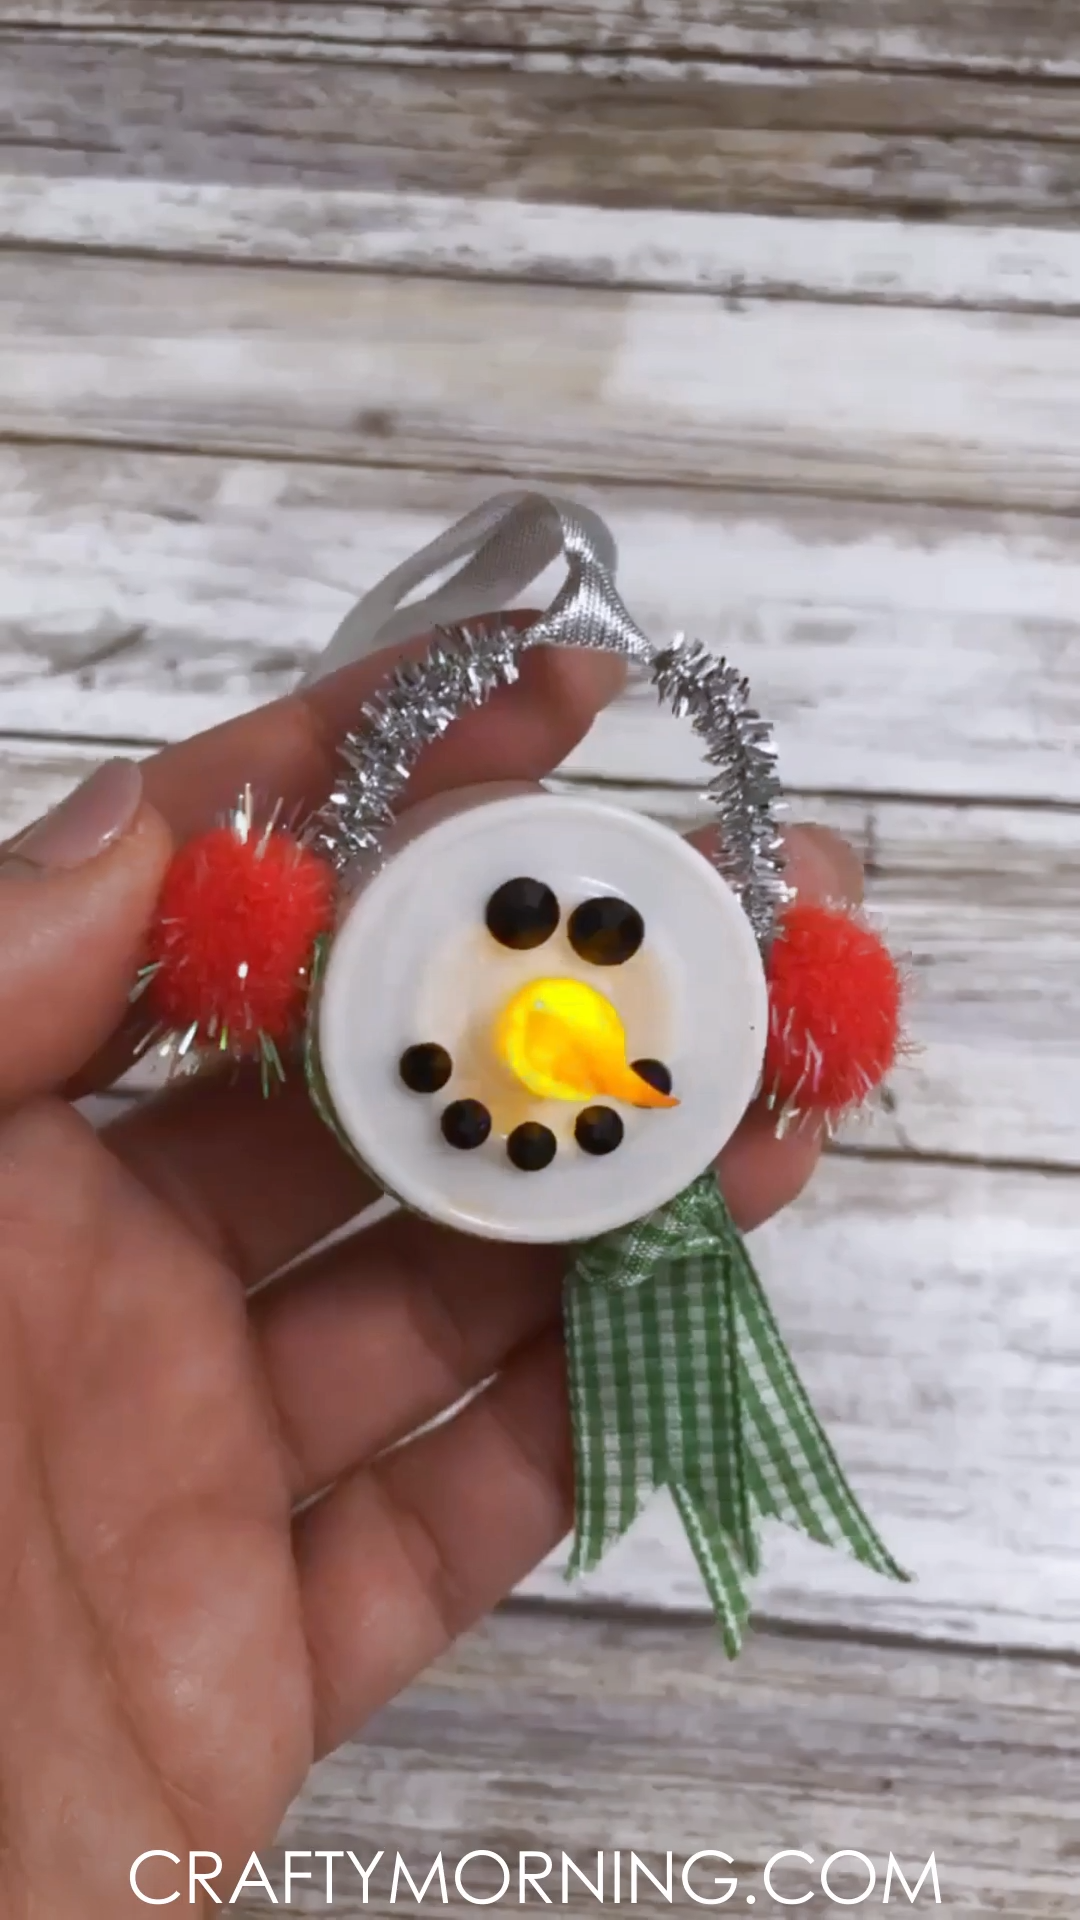 Tea Light Snowmen Ornaments Video Christmas Crafts To Make Fun Christmas Crafts Christmas Crafts For Gifts